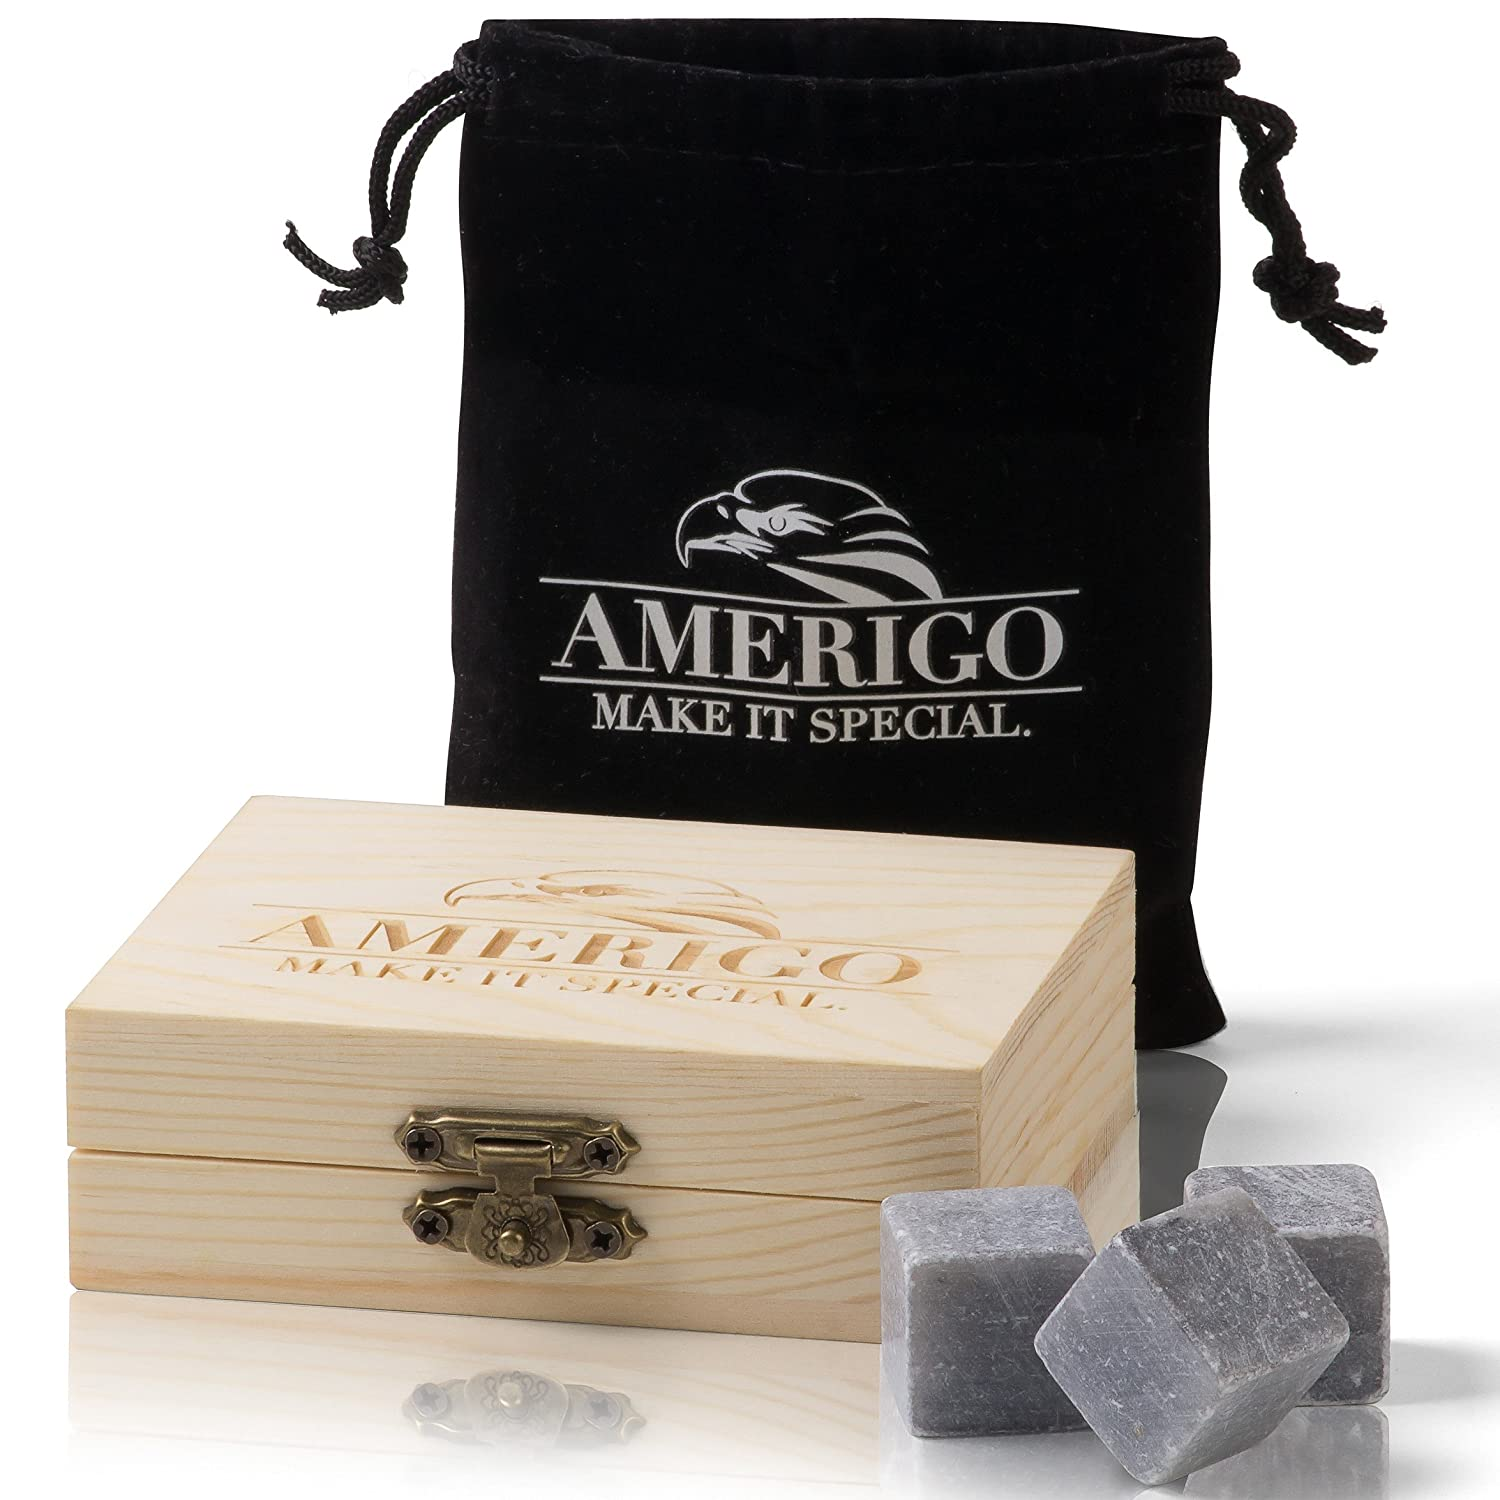 Premium Whiskey Stones Gift Set - Water Down Your Whisky? Never Again! Set of 9 Whiskey Rocks - Ice Cubes Reusable in Exclusive Wooden Gift Set - Whiskey Gifts for Man - Chilling Stones + FREE EBOOK Amerigo